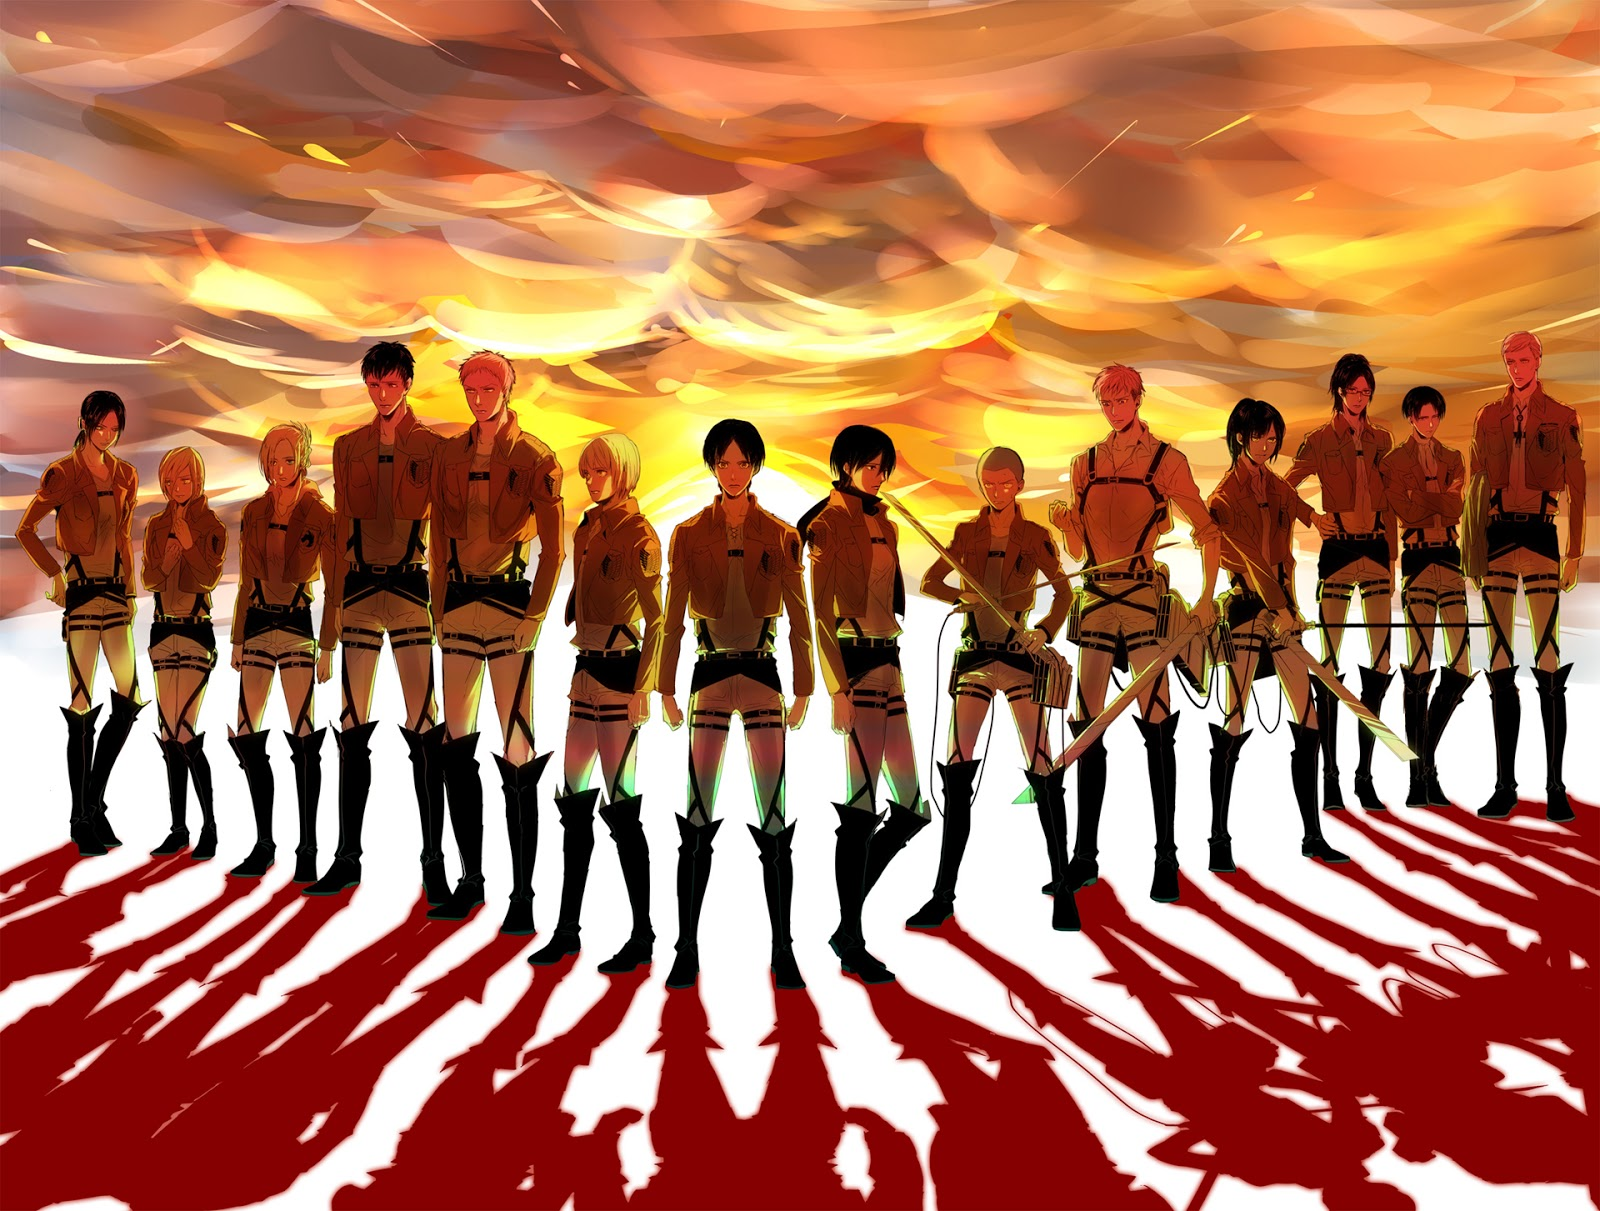 Attack on Titan Anime HD Wallpaper Animation Wallpapers 1600x1211